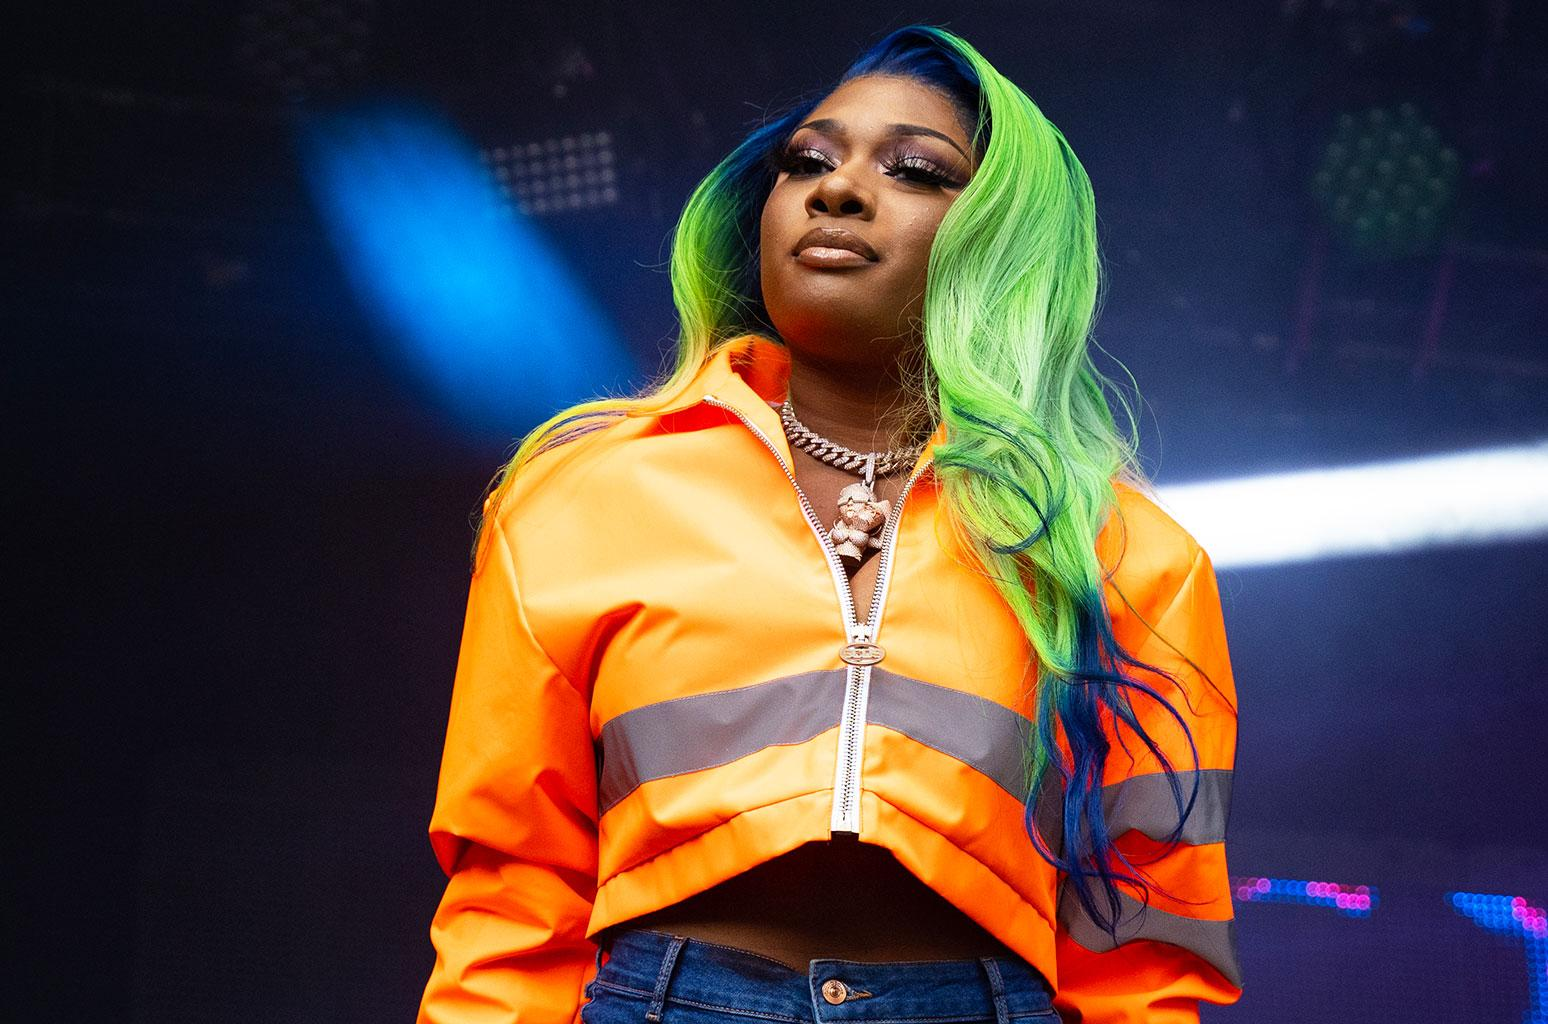 Megan Thee Stallion Reveals She Joined RocNation